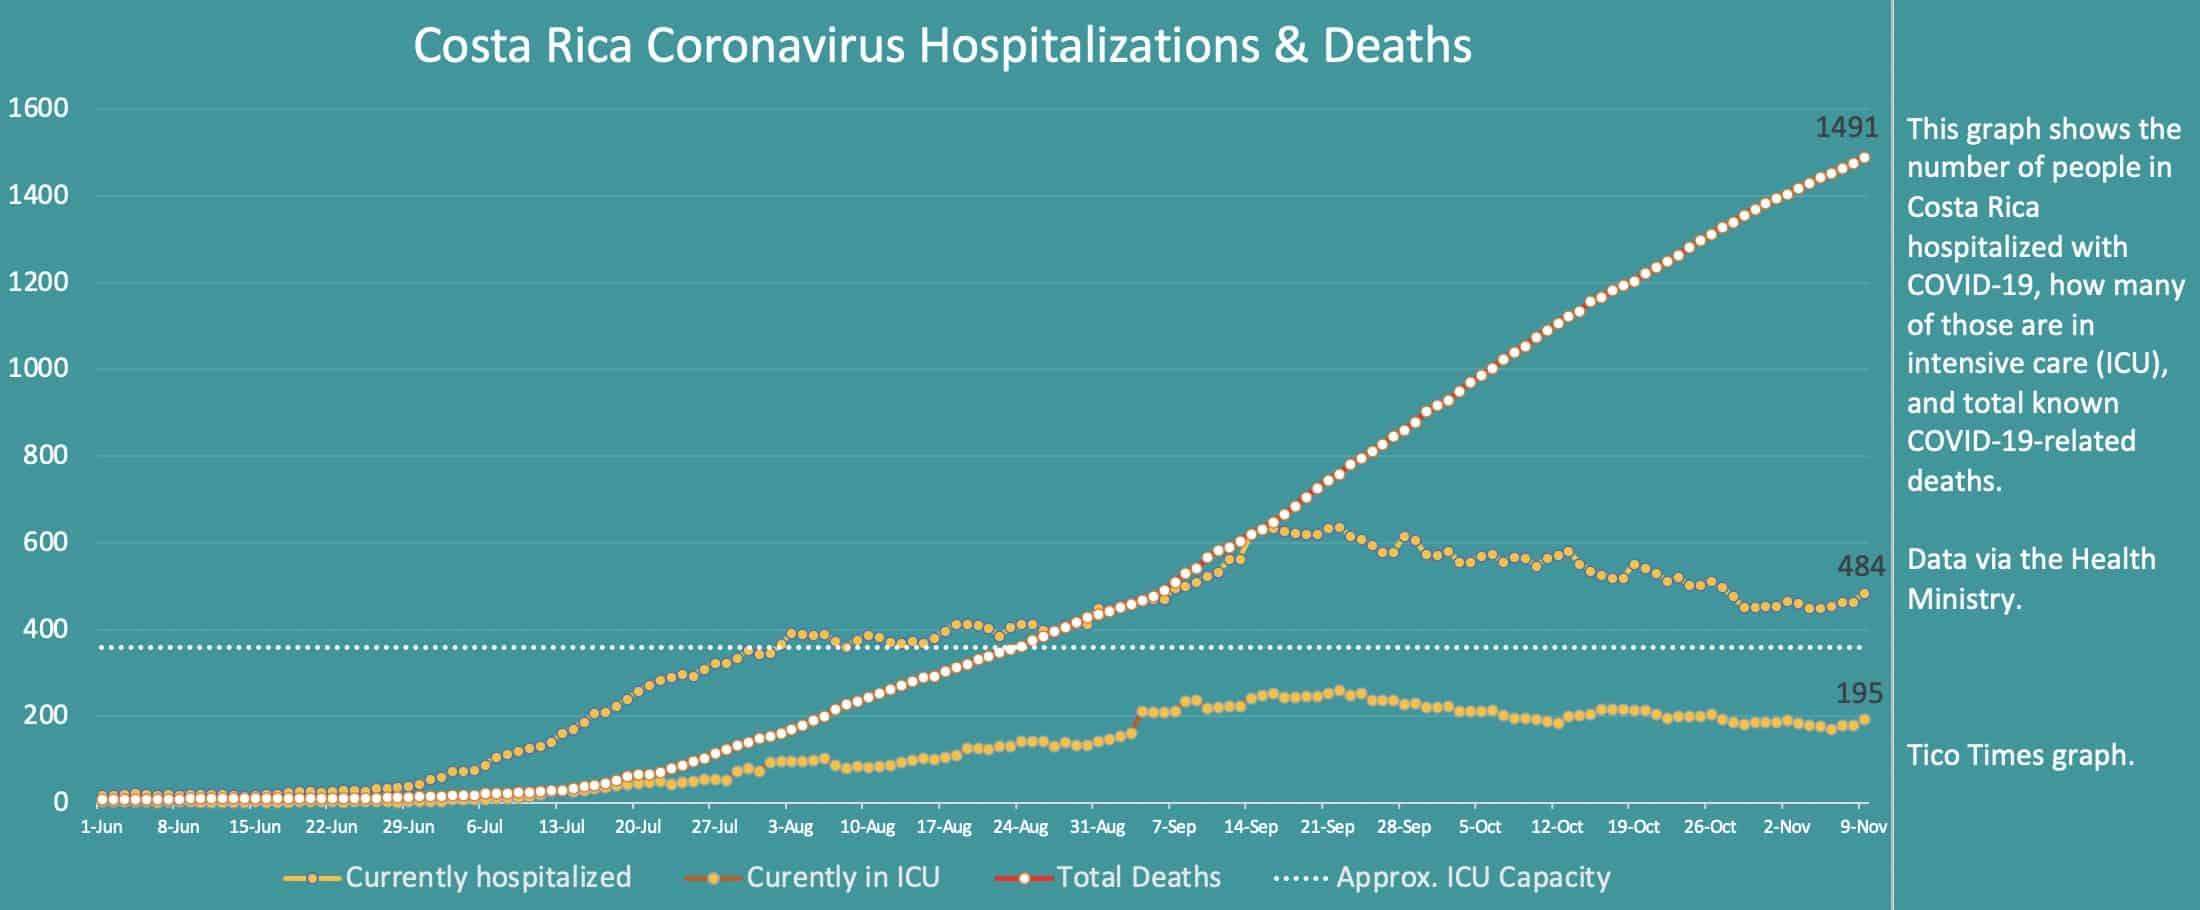 Costa Rica coronavirus hospitalizations and deaths on November 9, 2020